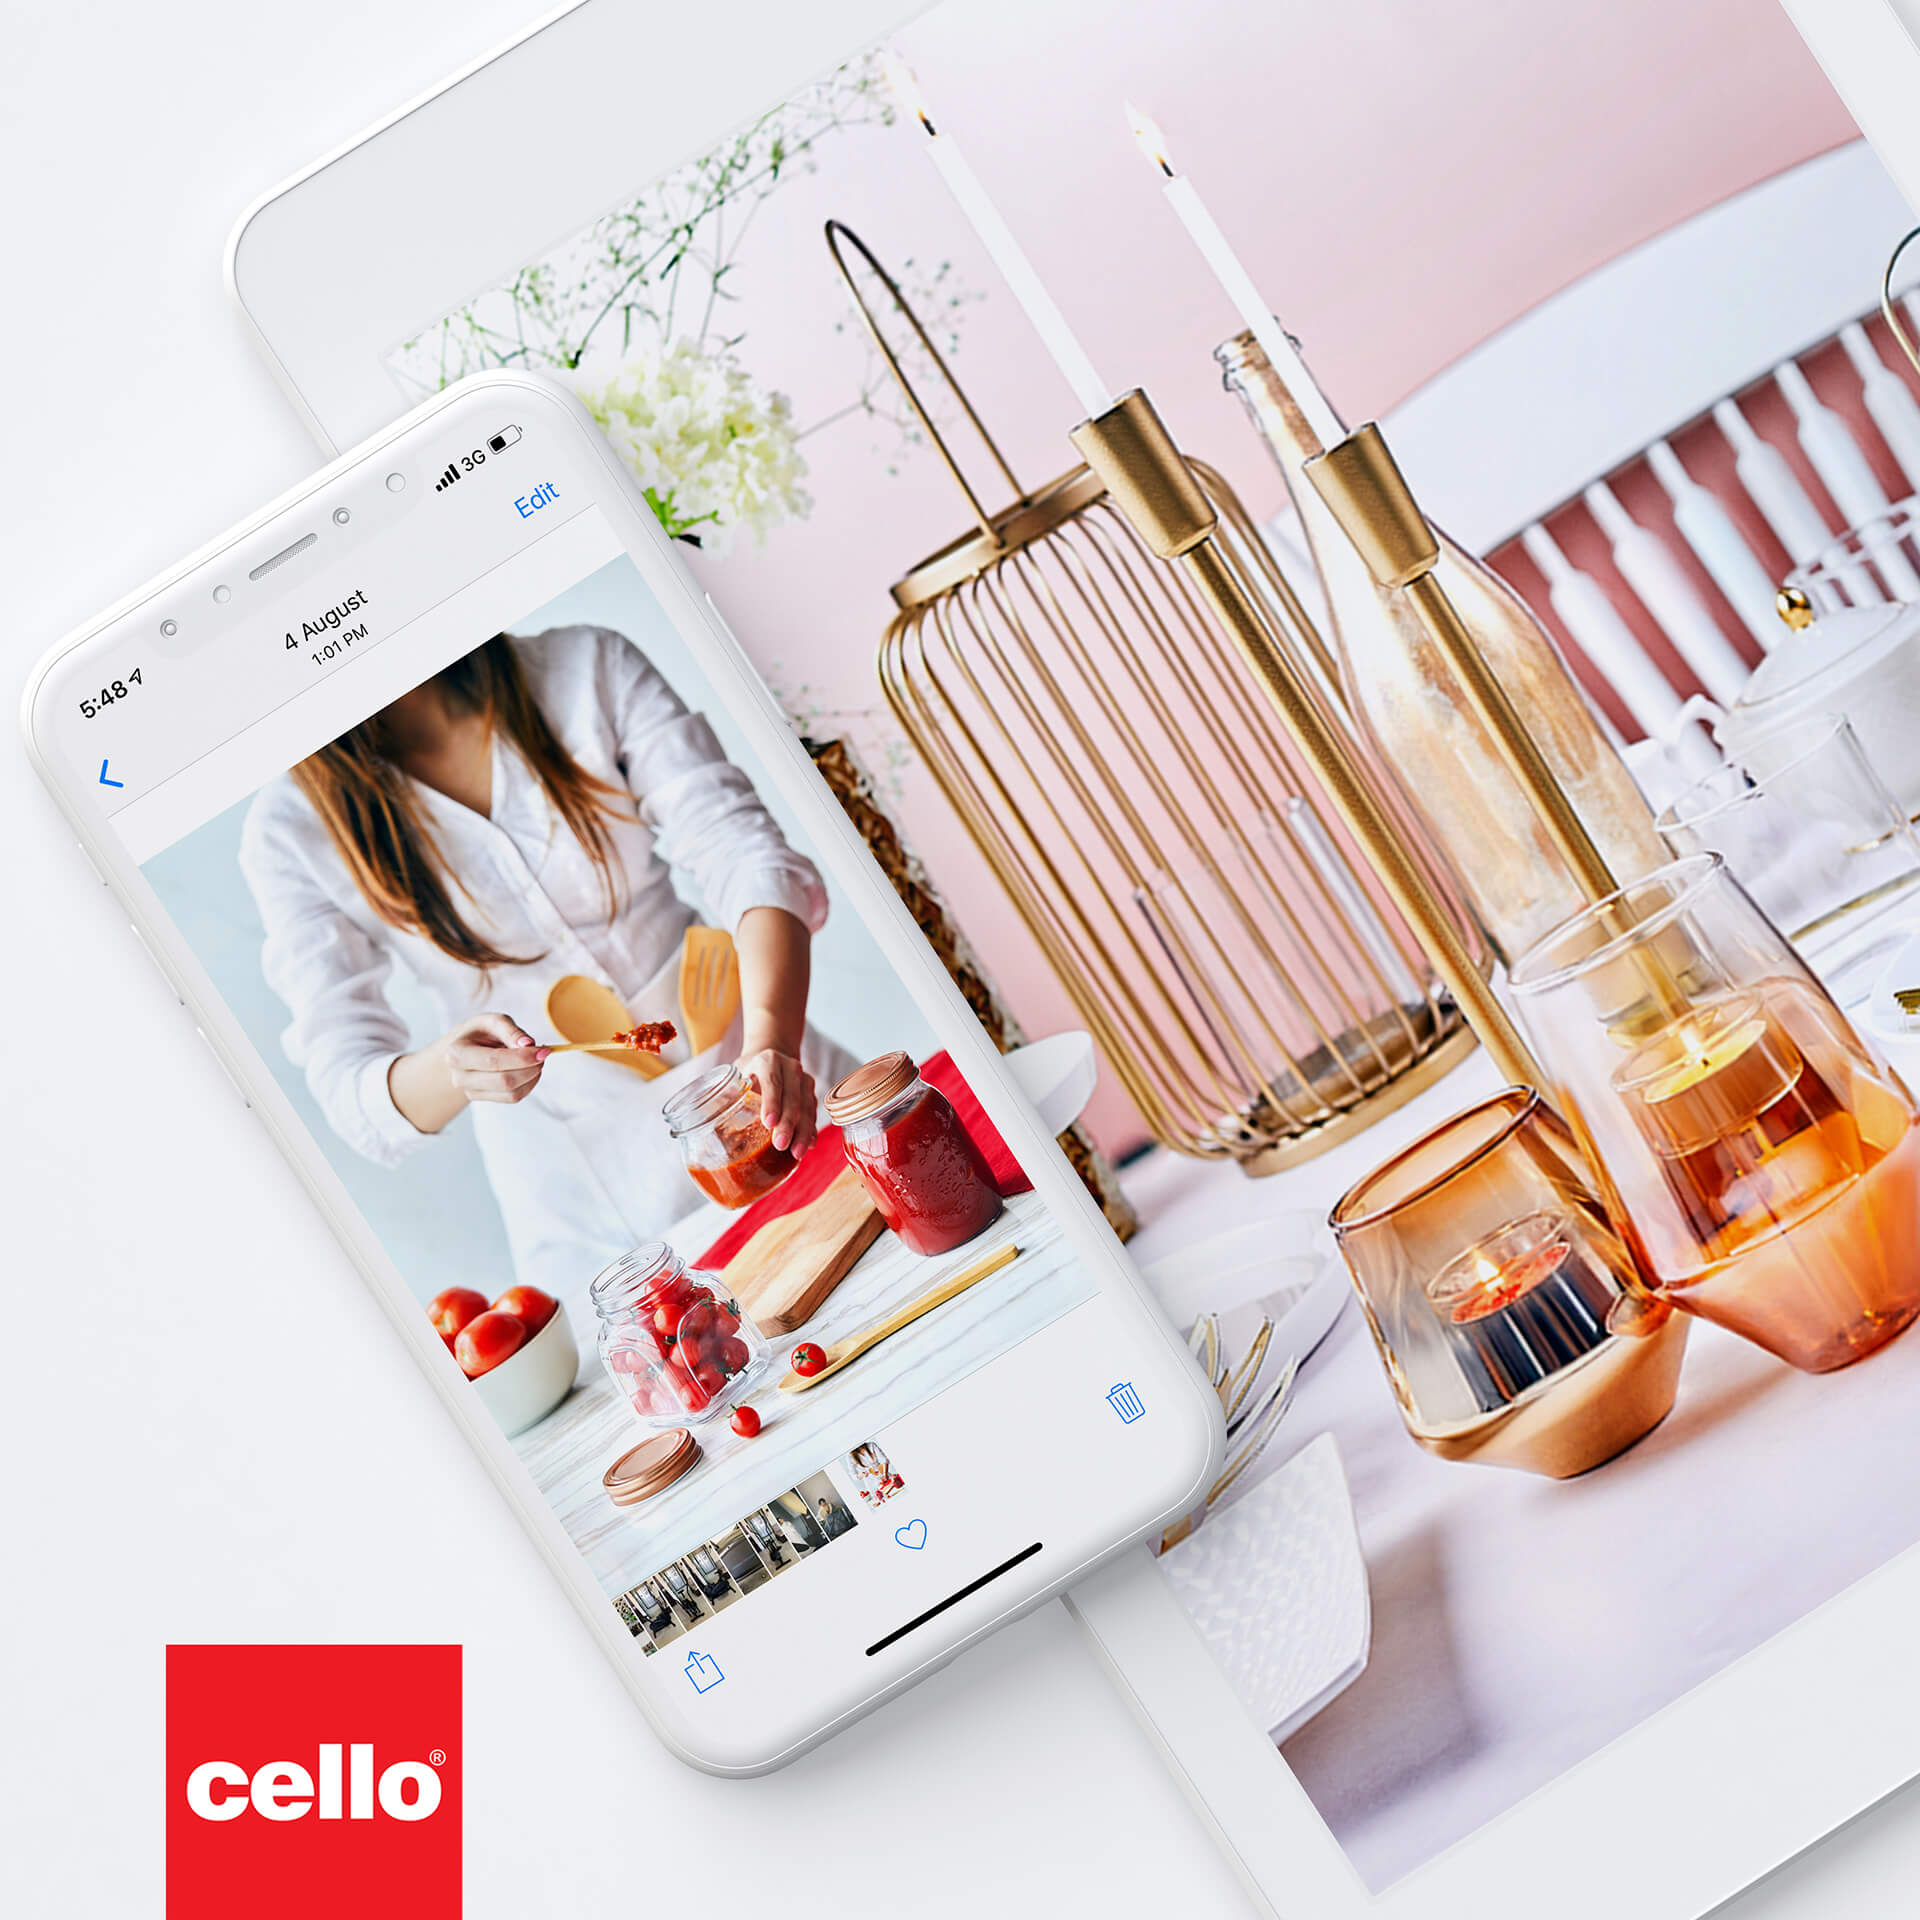 Cello – Glassware